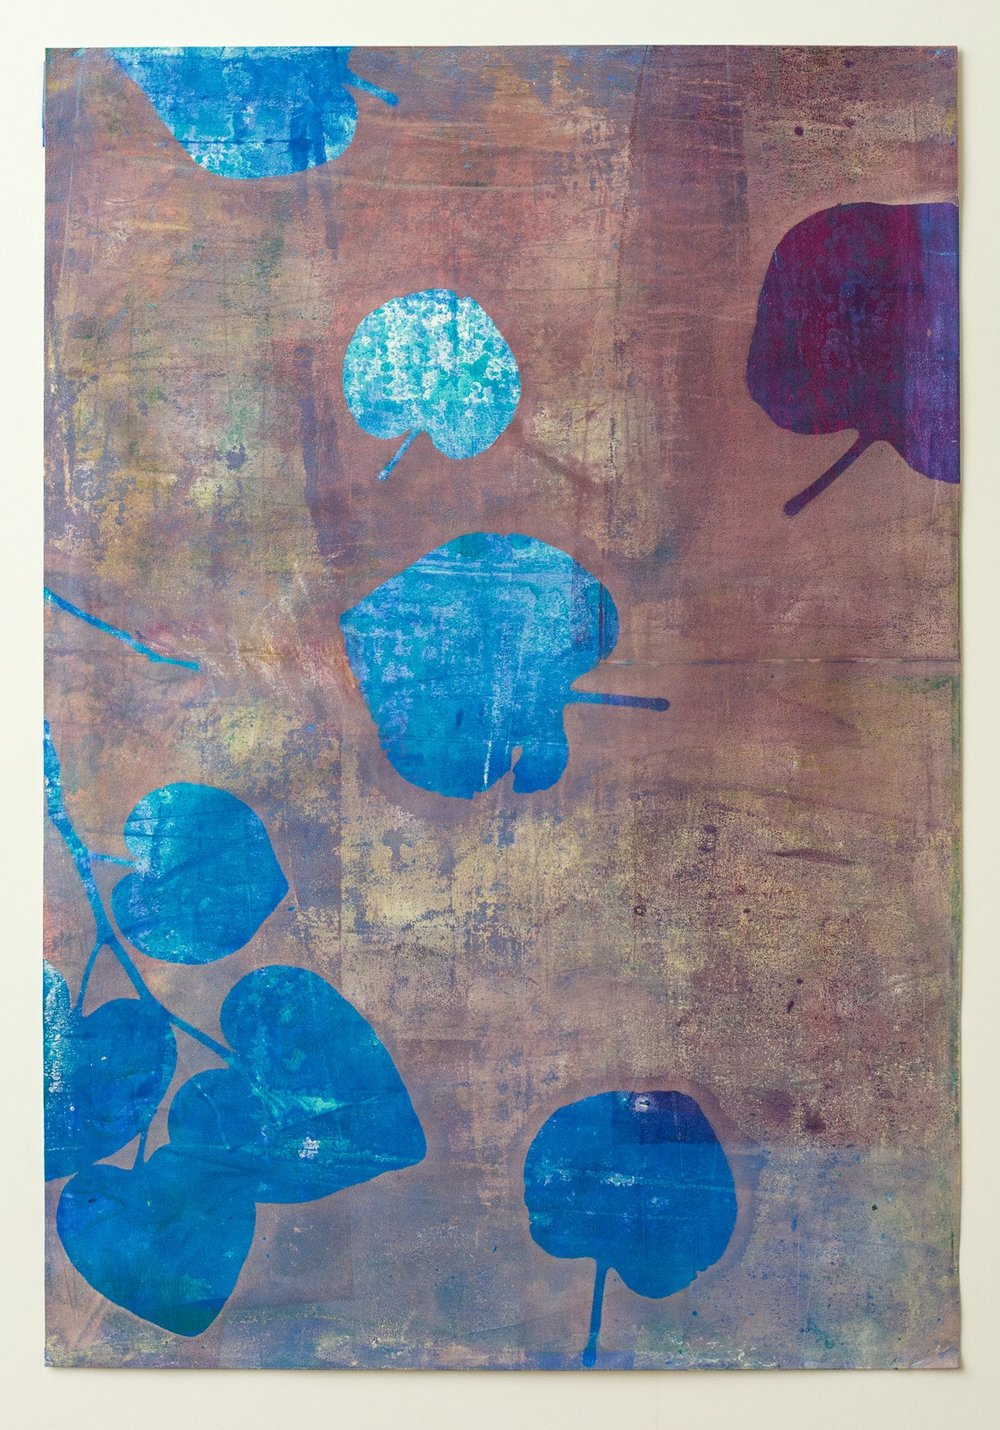 "After the Rain 2, 13"" x 19,"" Monoprint Collage"